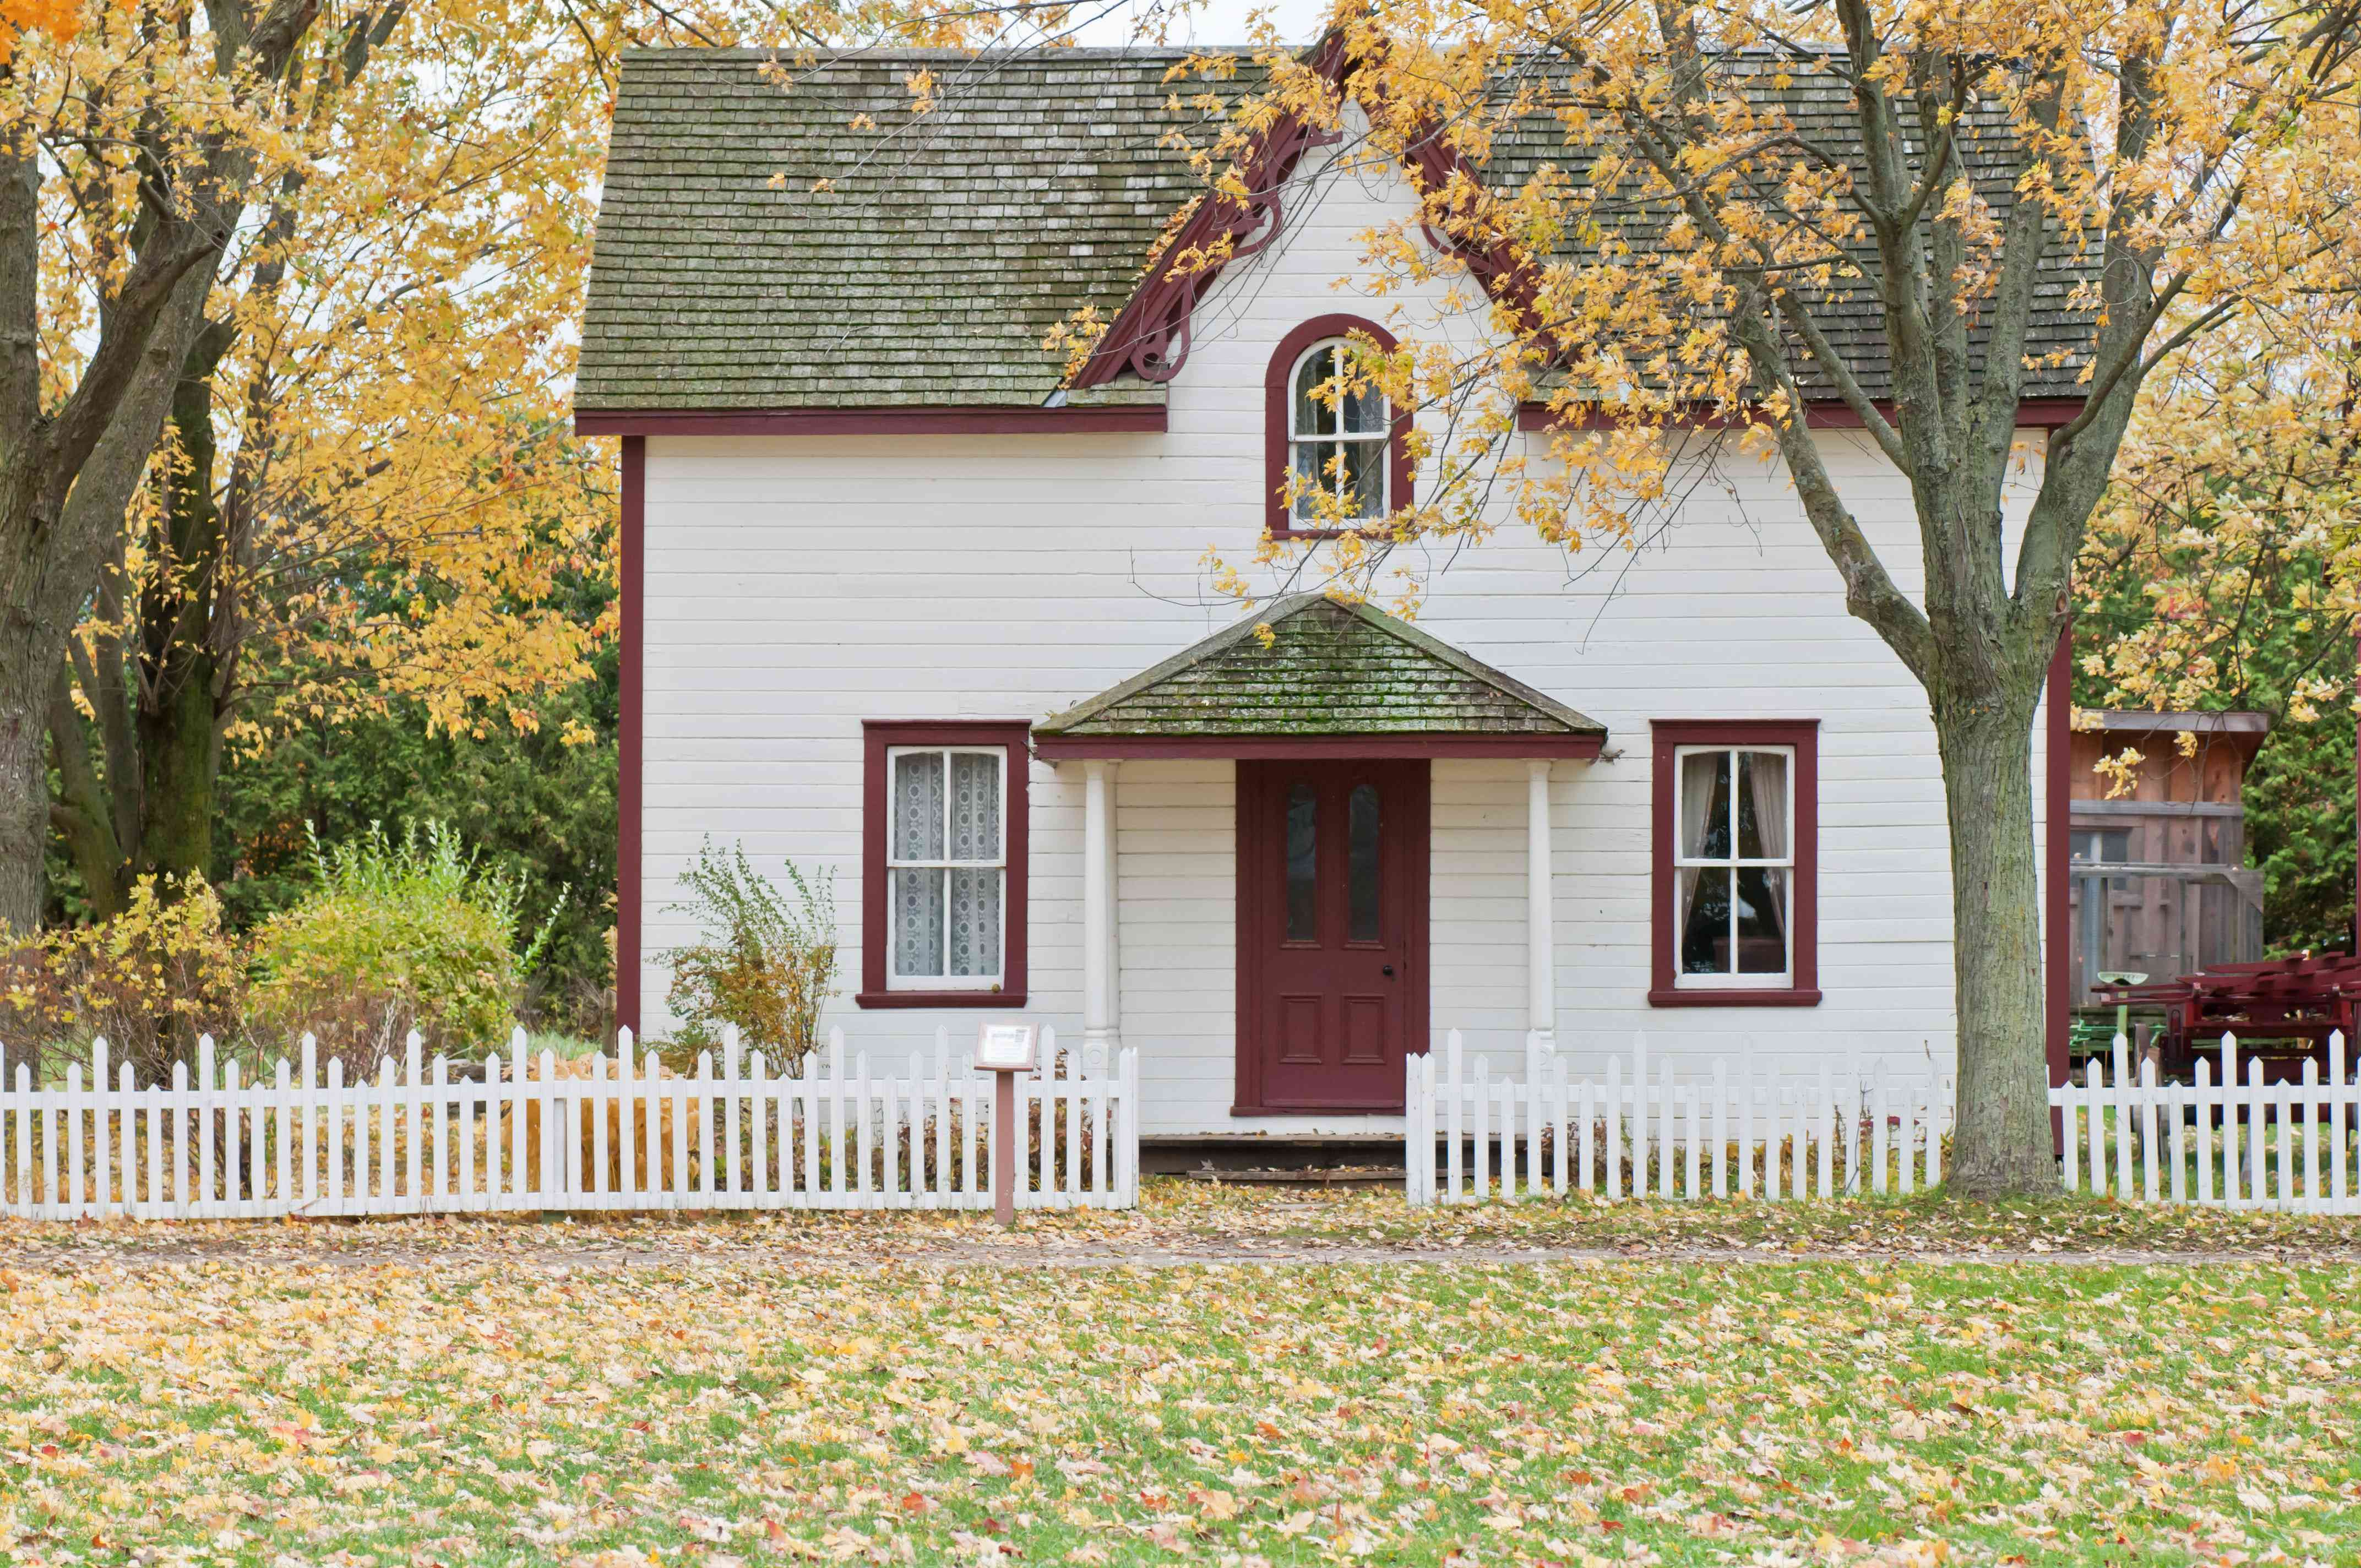 A small house with a tree and fence in the autumn